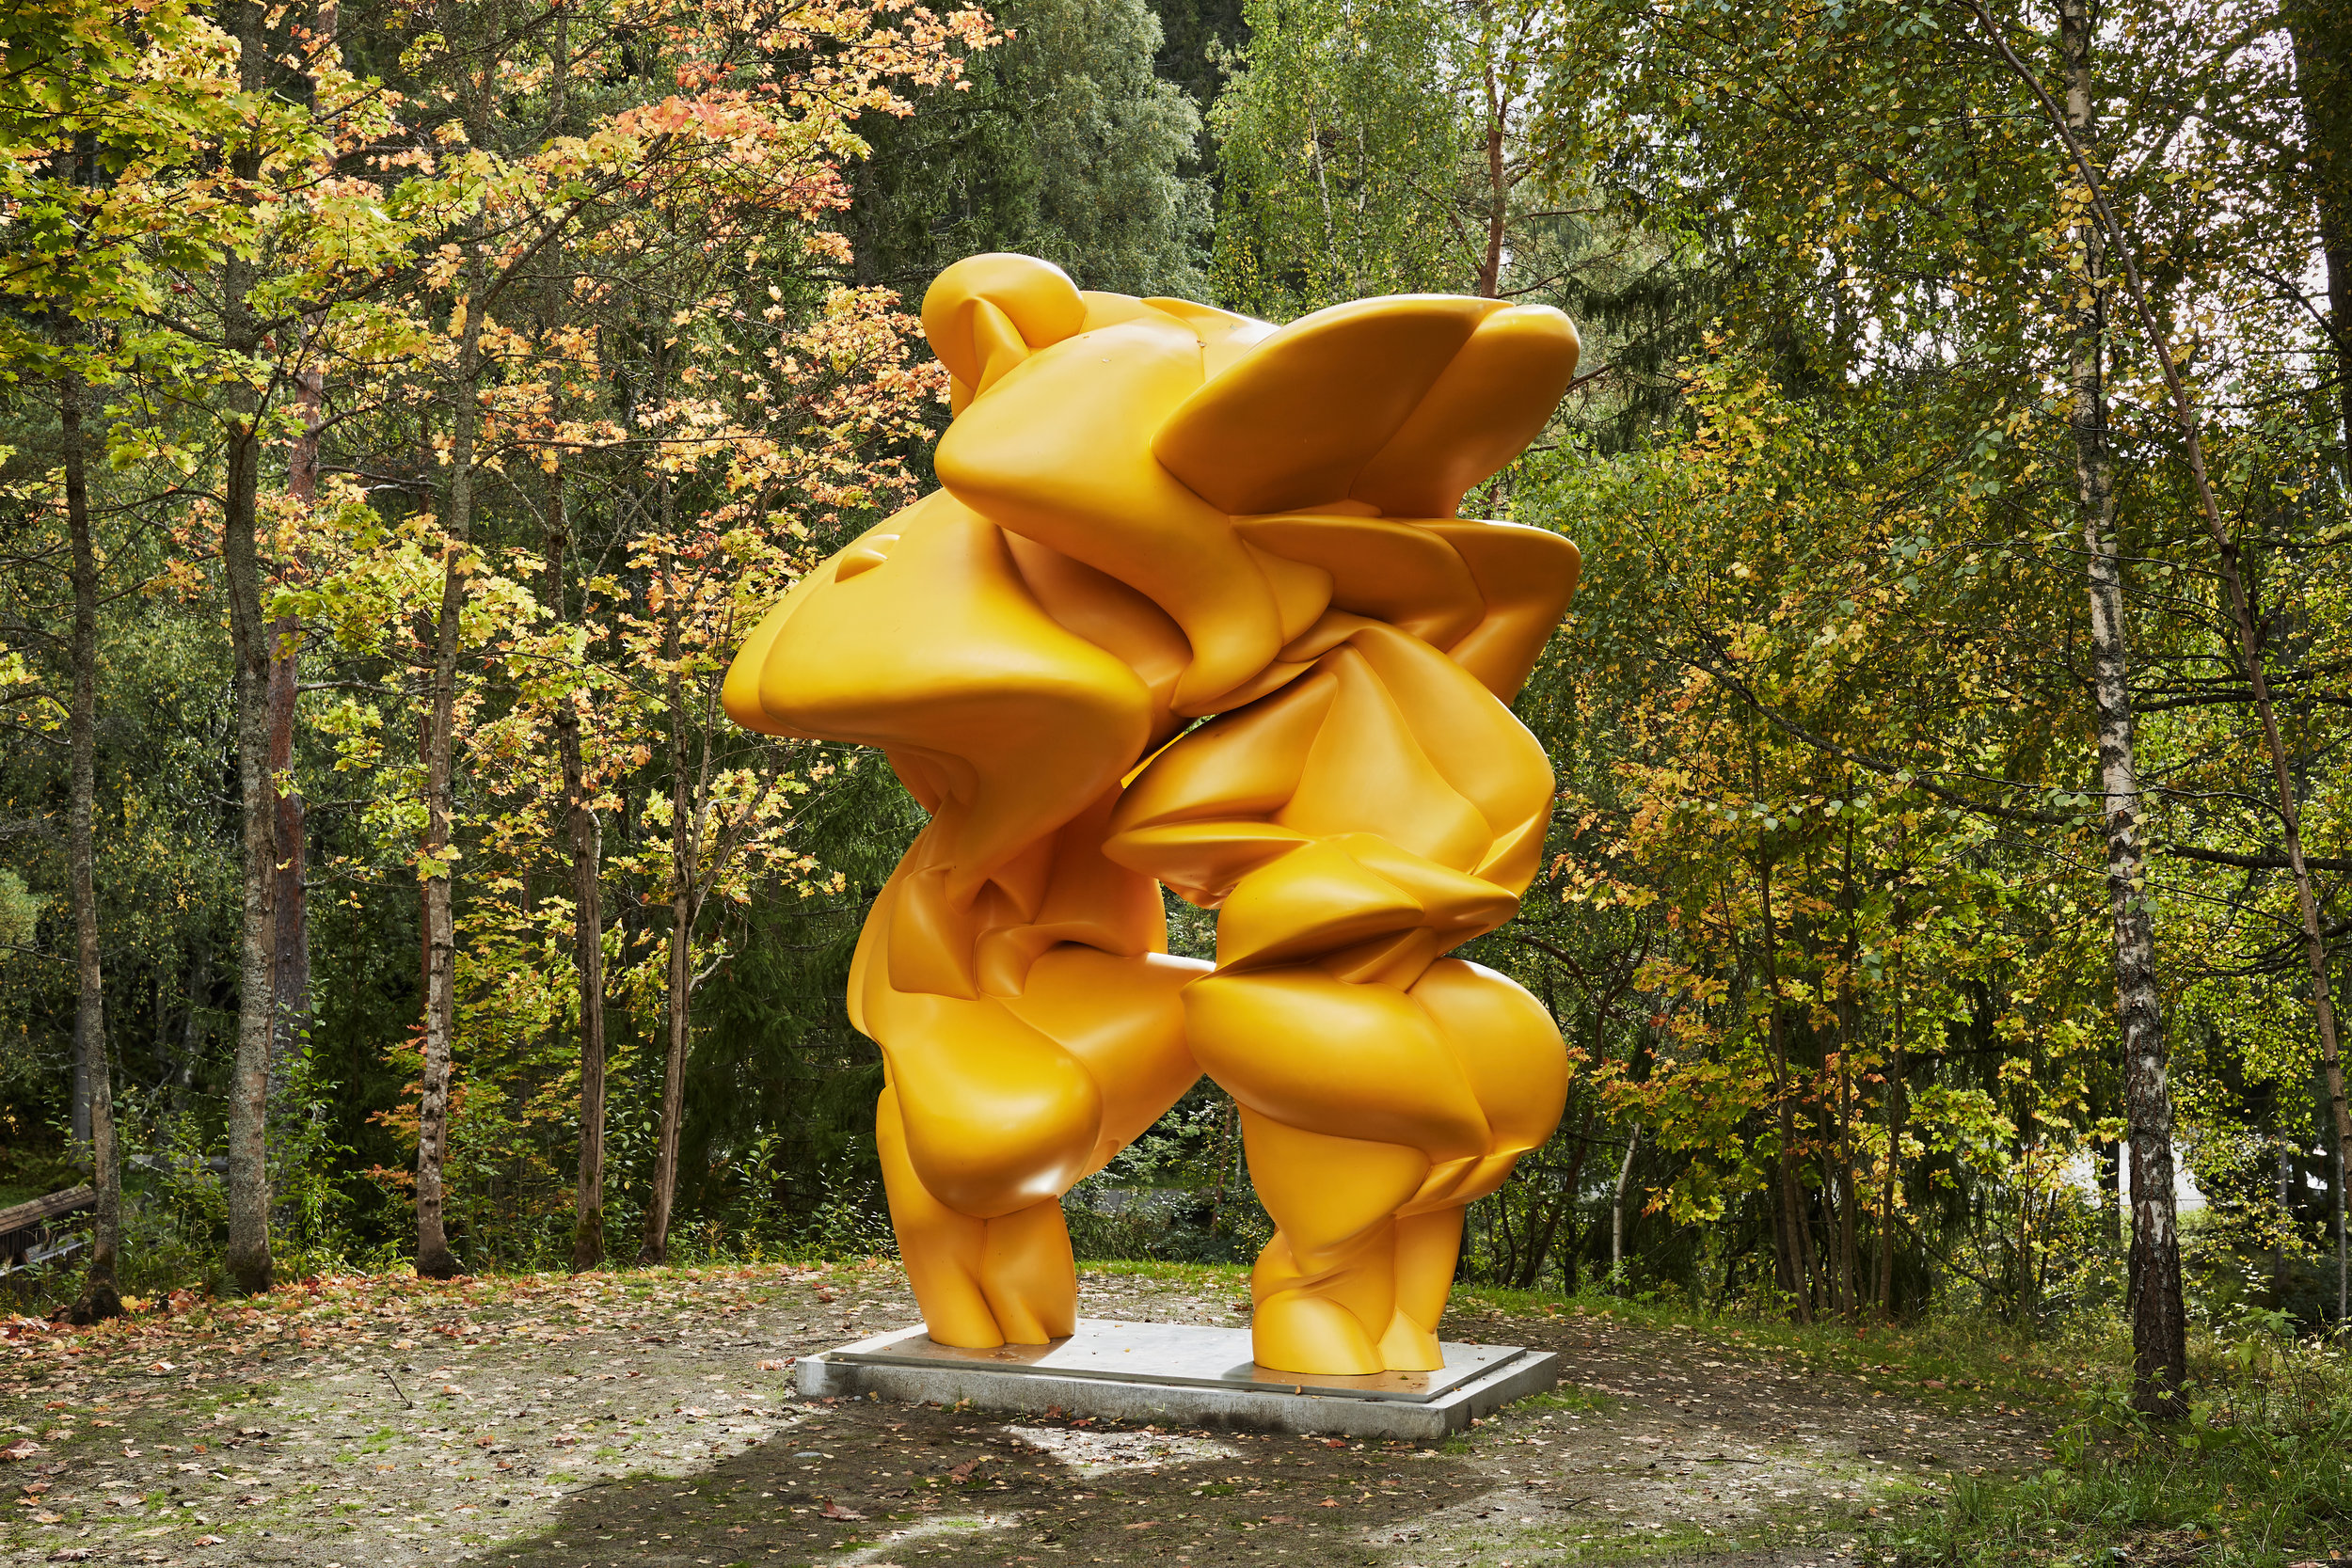 Tony Cragg, Castor & Pollux, 2015  photo credit: Kistefos Museet and Frederic Boudin